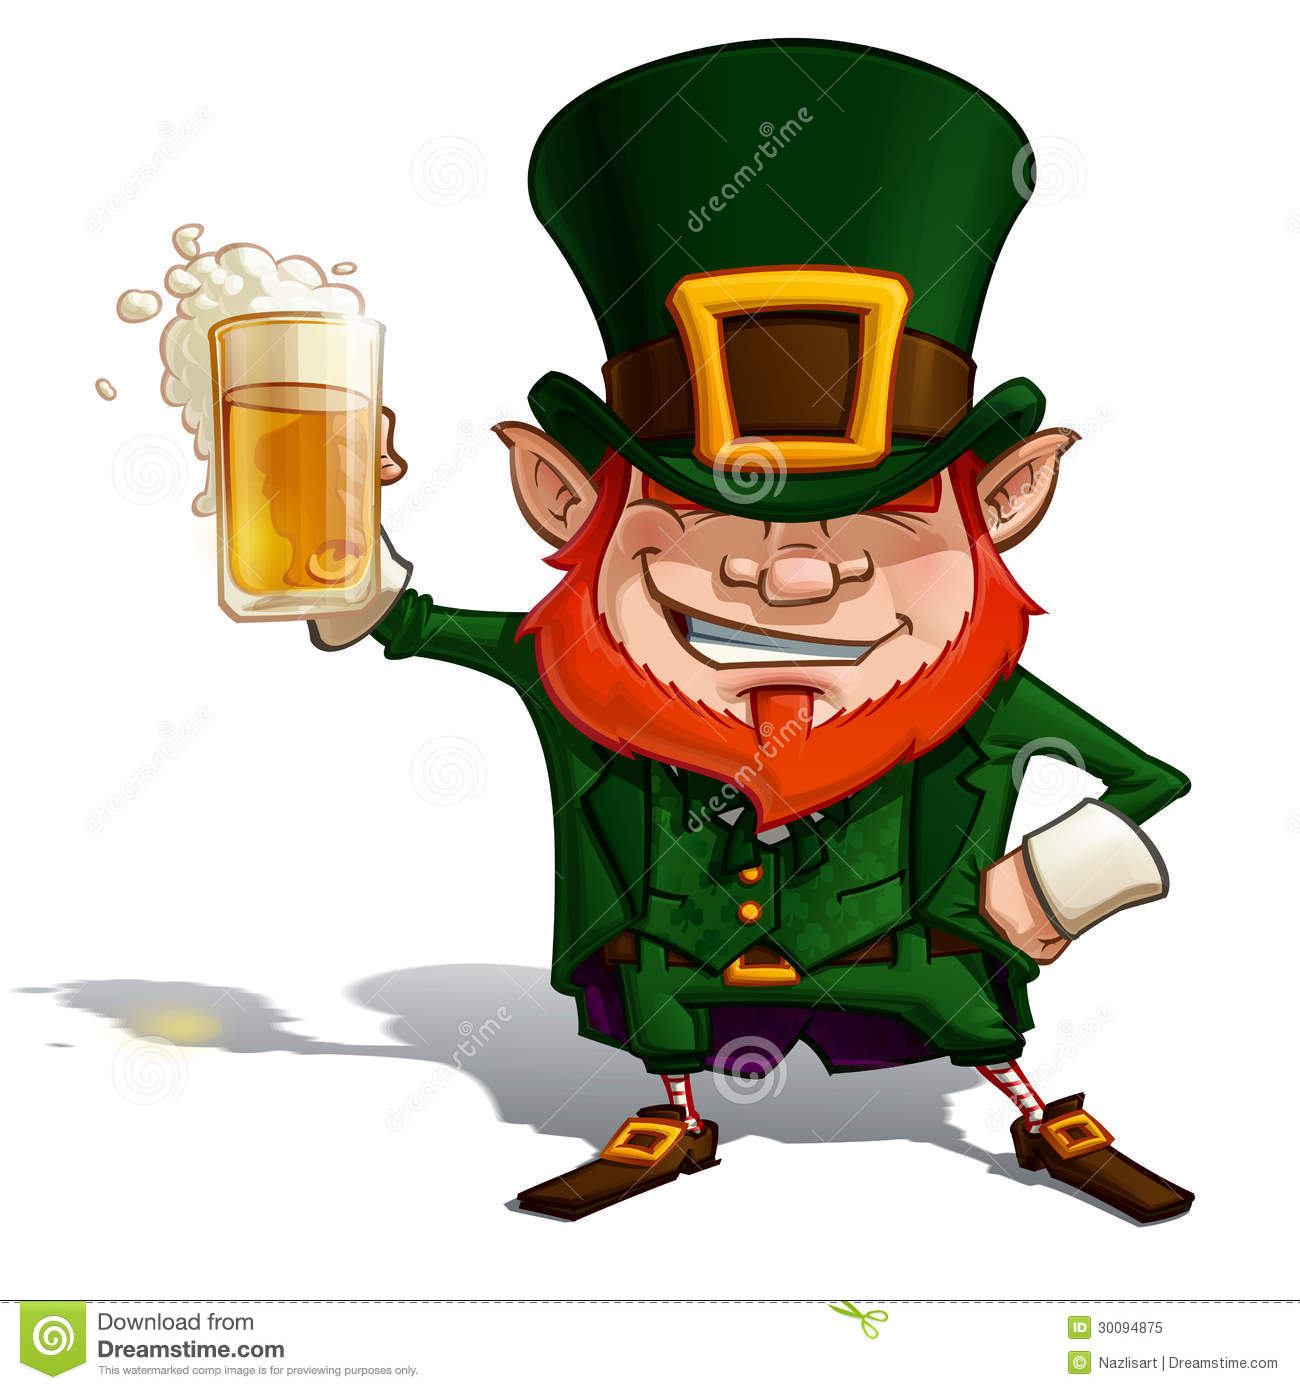 Cartoon Illustration Of St  Patrick Popular Image Cheering With A